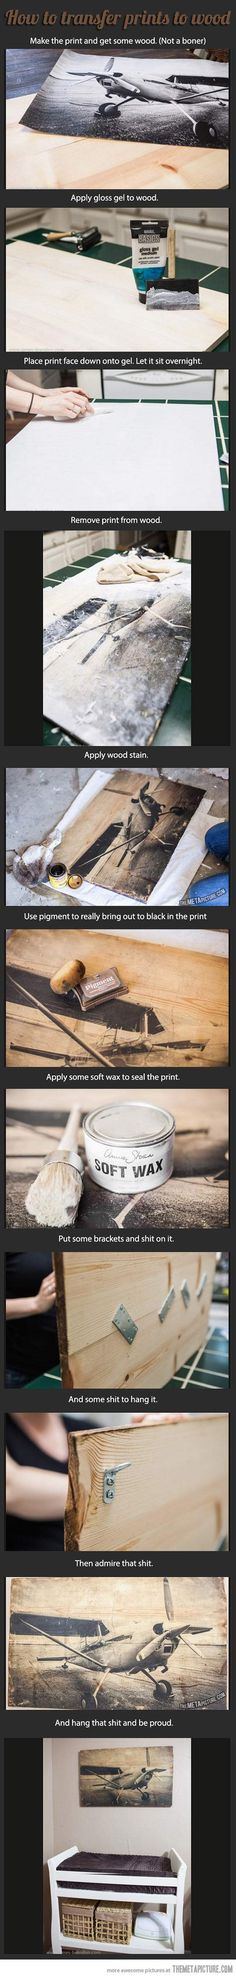 How to transfer prints to wood�